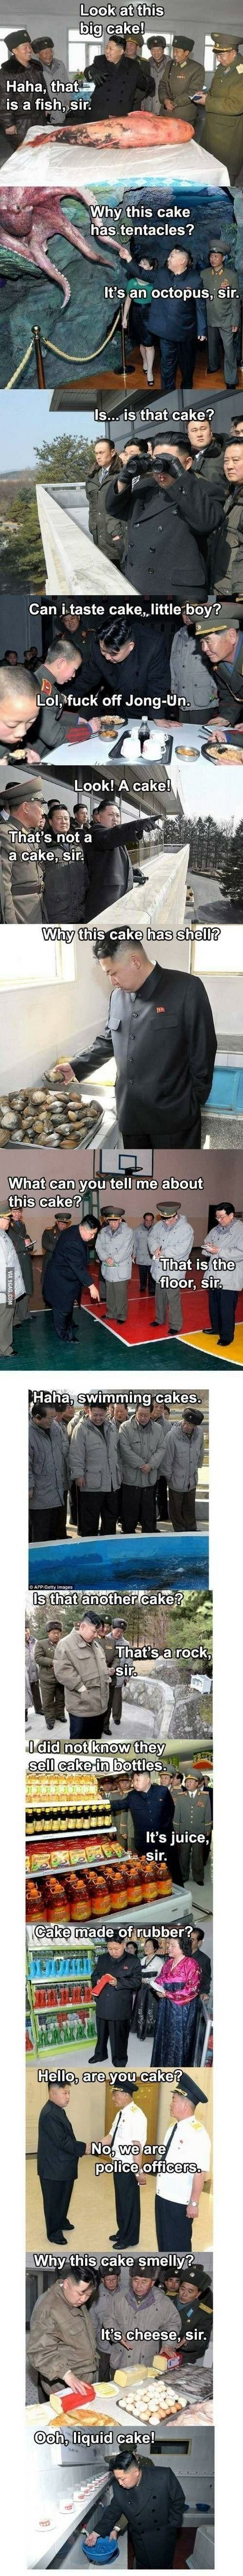 """Kim Jong Un explores the world (WTF IS THIS AND WHY IS IT SO FUNNY?!?) """"what can you tell me about this cake?"""" """"that is the floor, sir"""""""